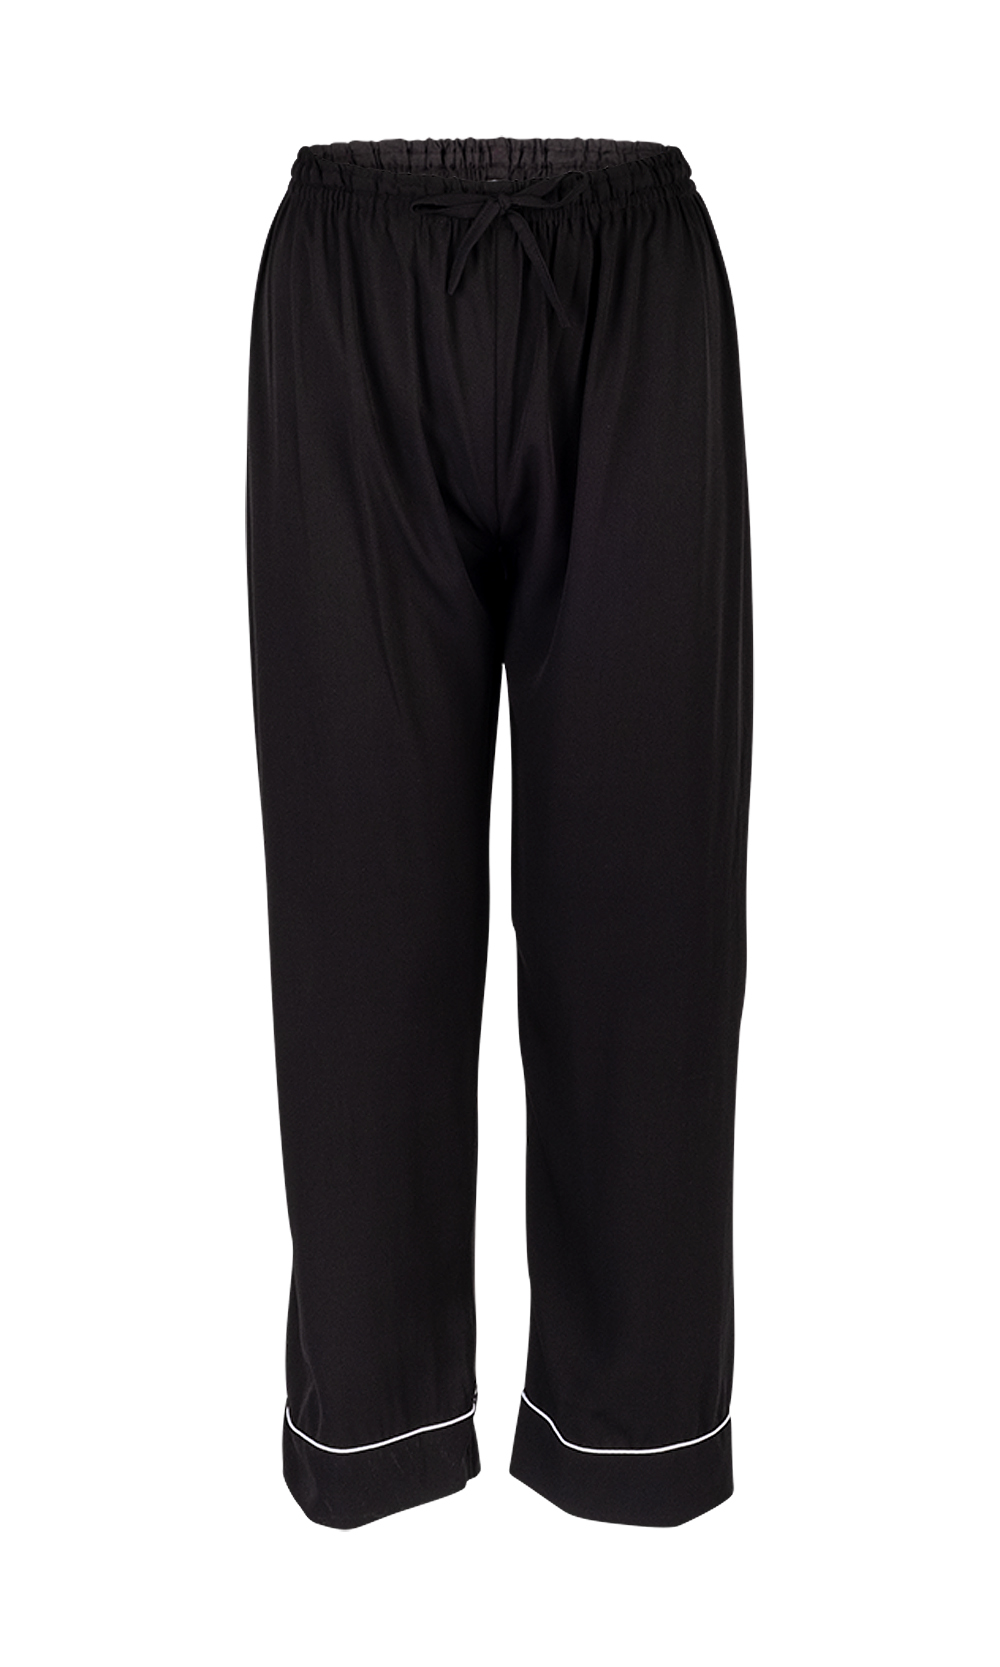 Black Luxurious Sleepwear & Pyjamas Set - Pant